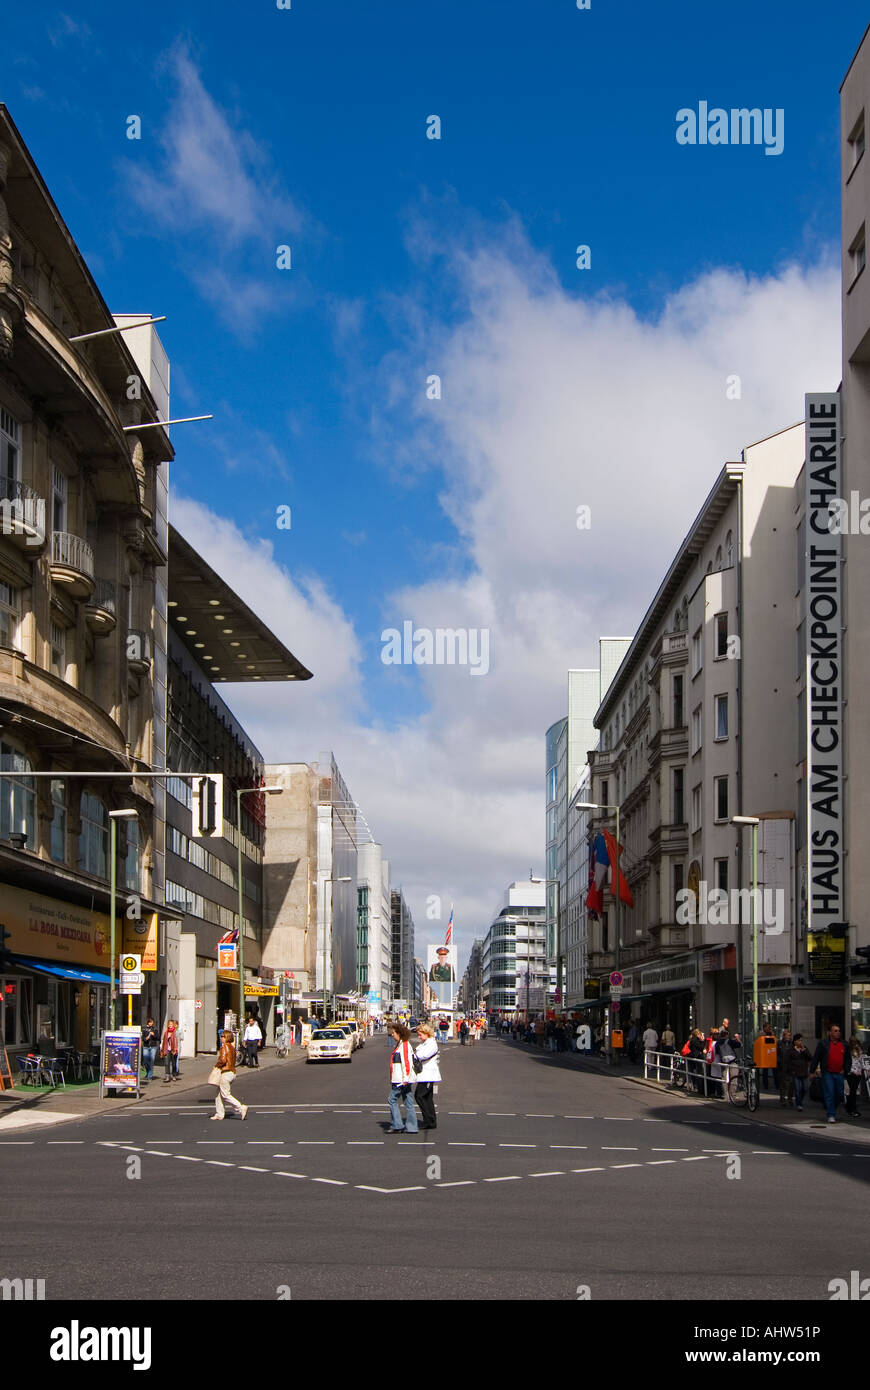 Vertical wide angle of Checkpoint Charlie, the infamous border crossing viewed from what was the American sector. Stock Photo